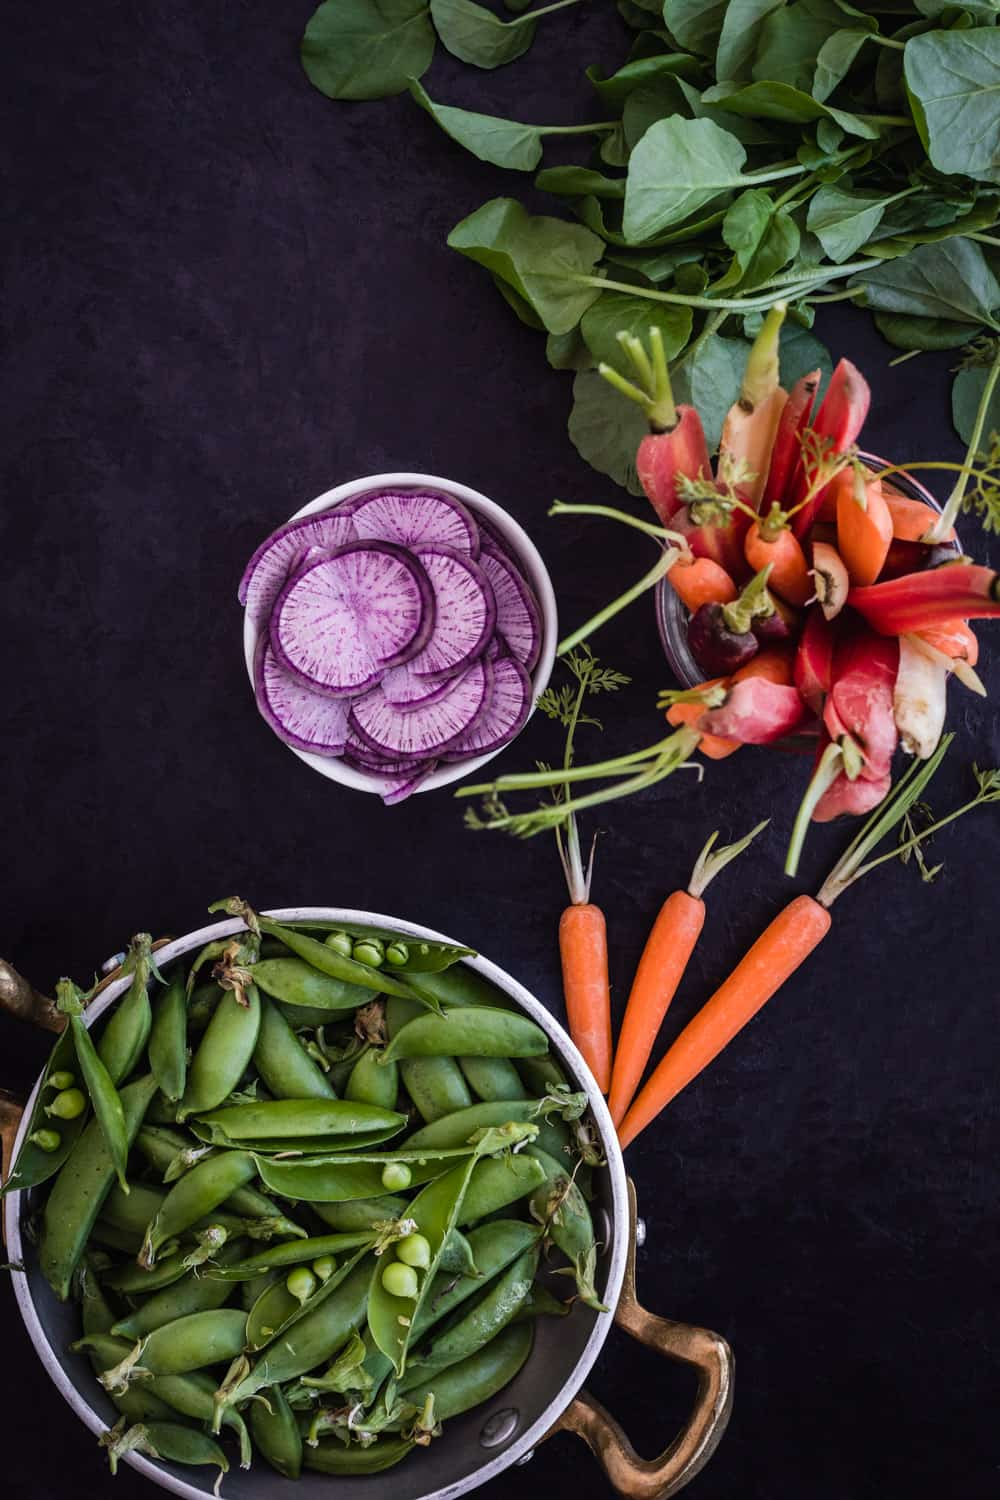 Ingredient shot of snap peas, radishes, carrots and watercress.